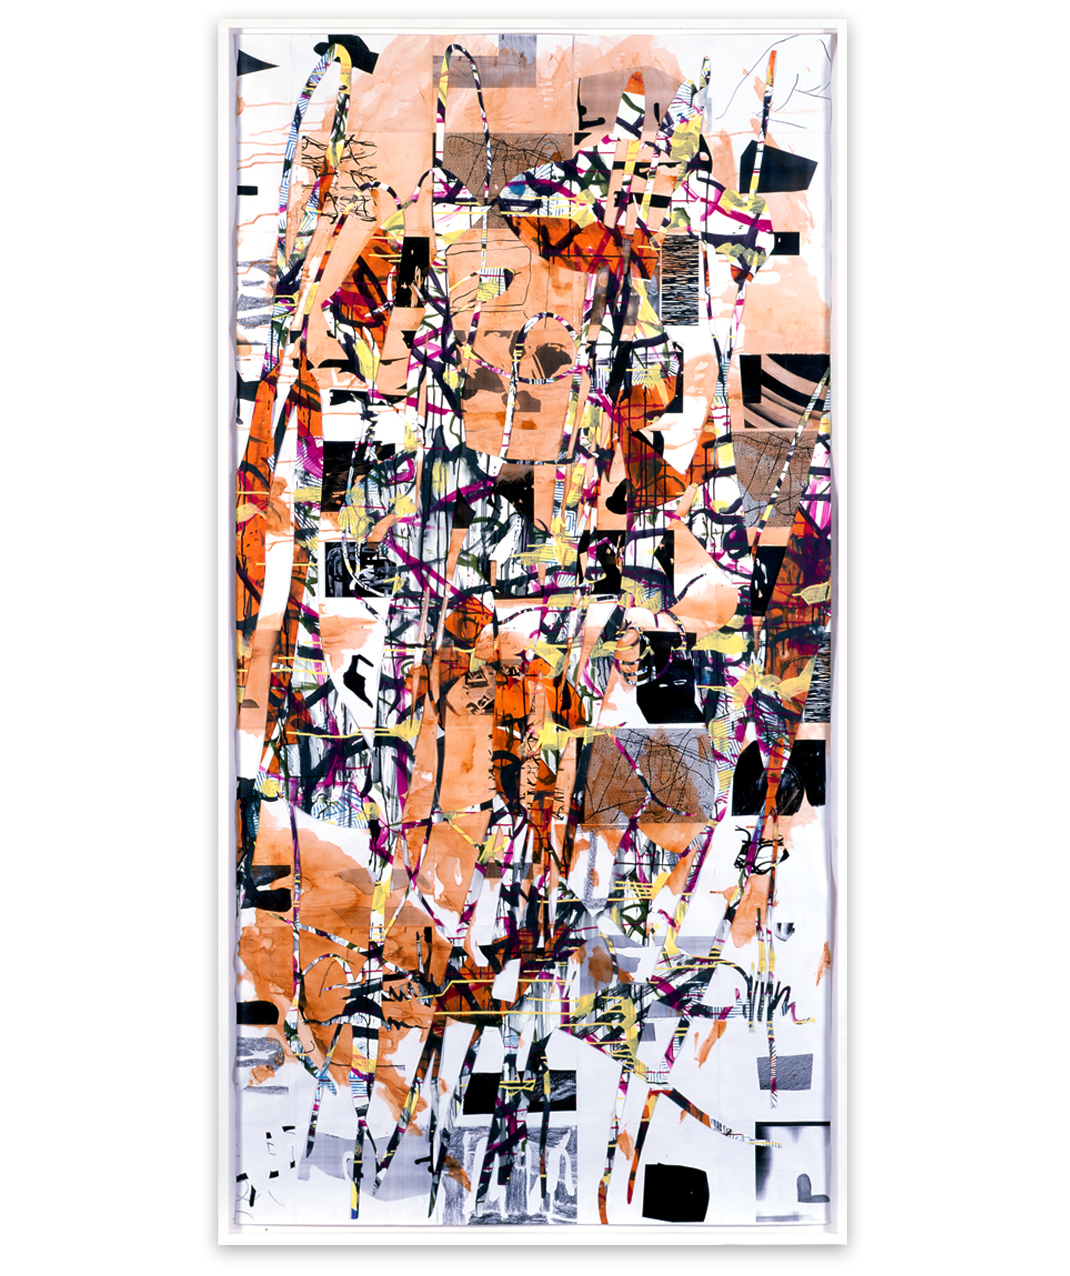 #41 DB2, 2006, Mixed media collage on paper, 250 x 123 cm